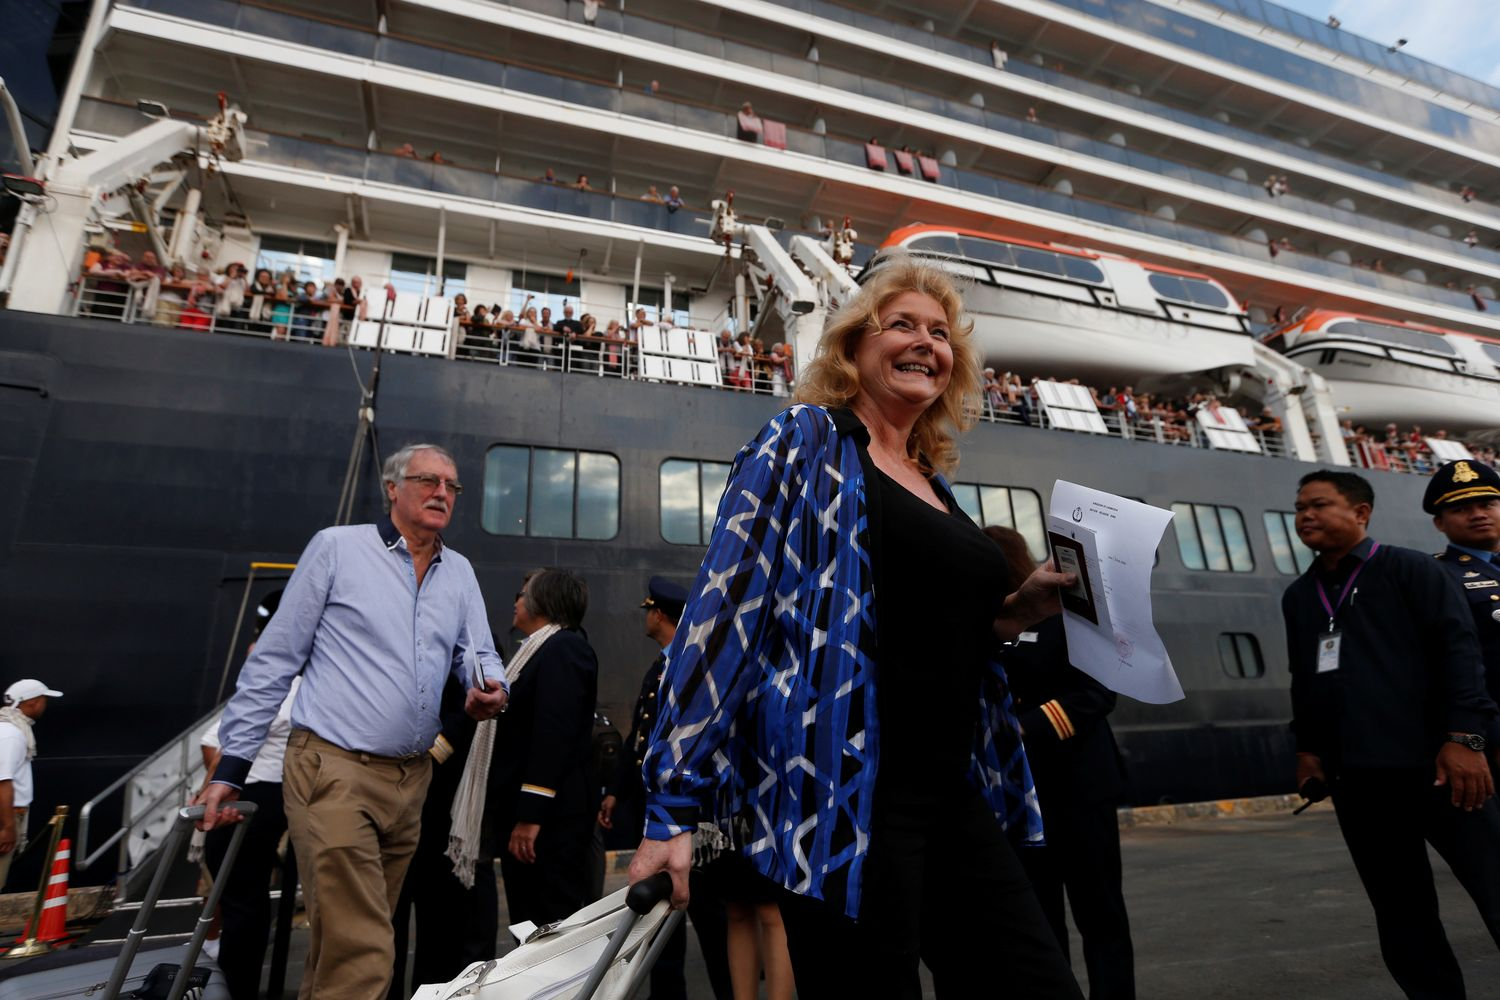 Passengers of 'MS Westerdam', a cruise ship that spent two weeks at sea after being turned away by five countries over fears that someone aboard might have the coronavirus, get off as it docks in Sihanoukville on Friday. (Reuters photo)